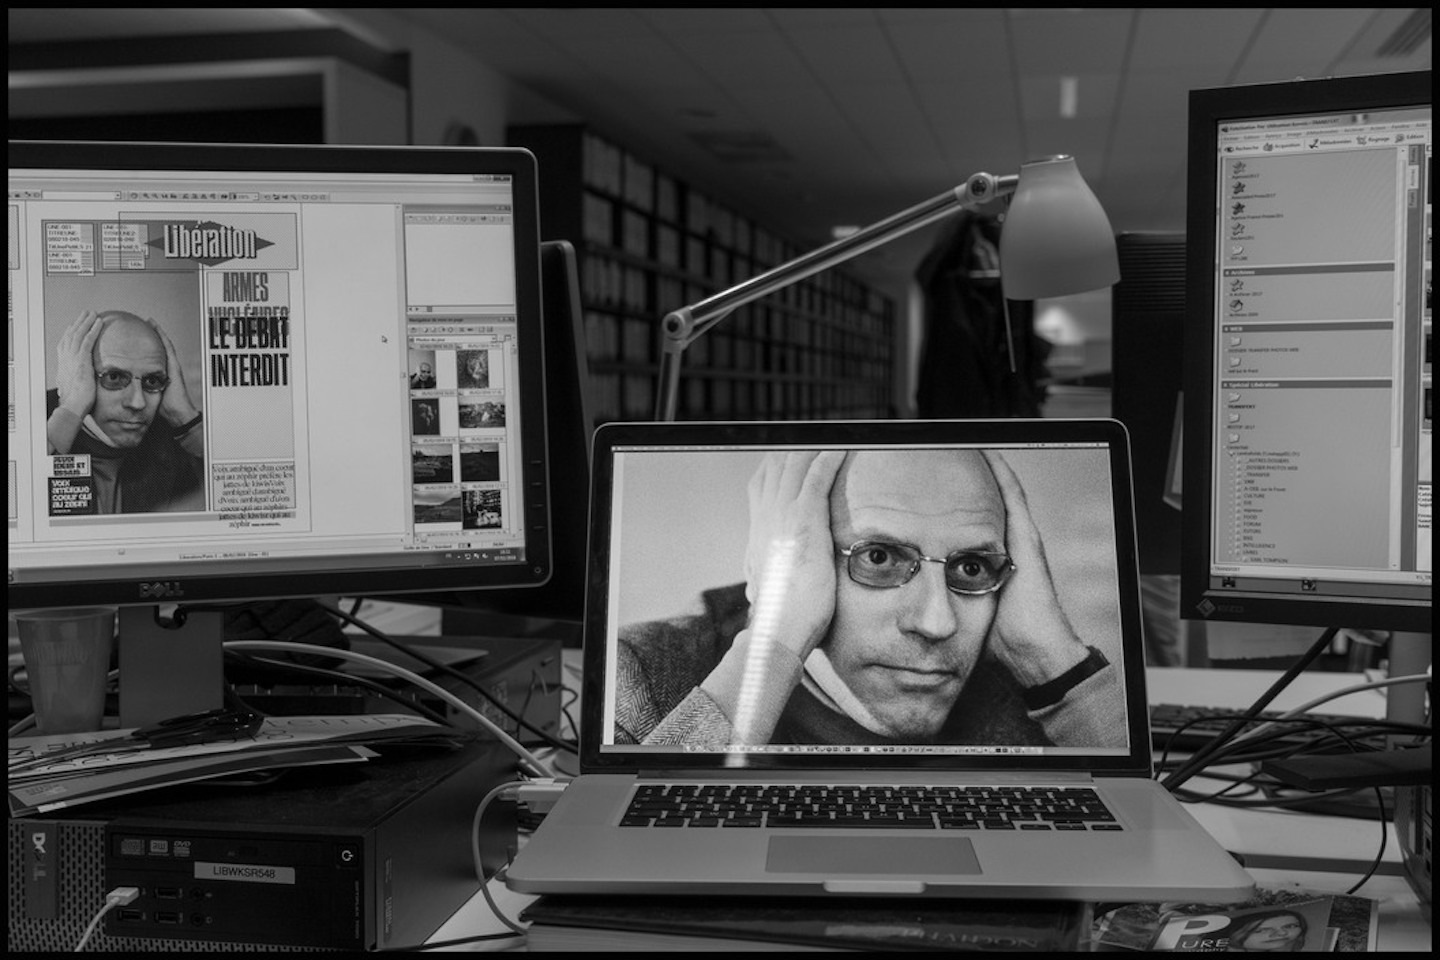 A portrait of French intelllectual and essayist Michel FOUCAULT by AFP photographer Michele BANCILHON to be on the cover of the next morning's edition.